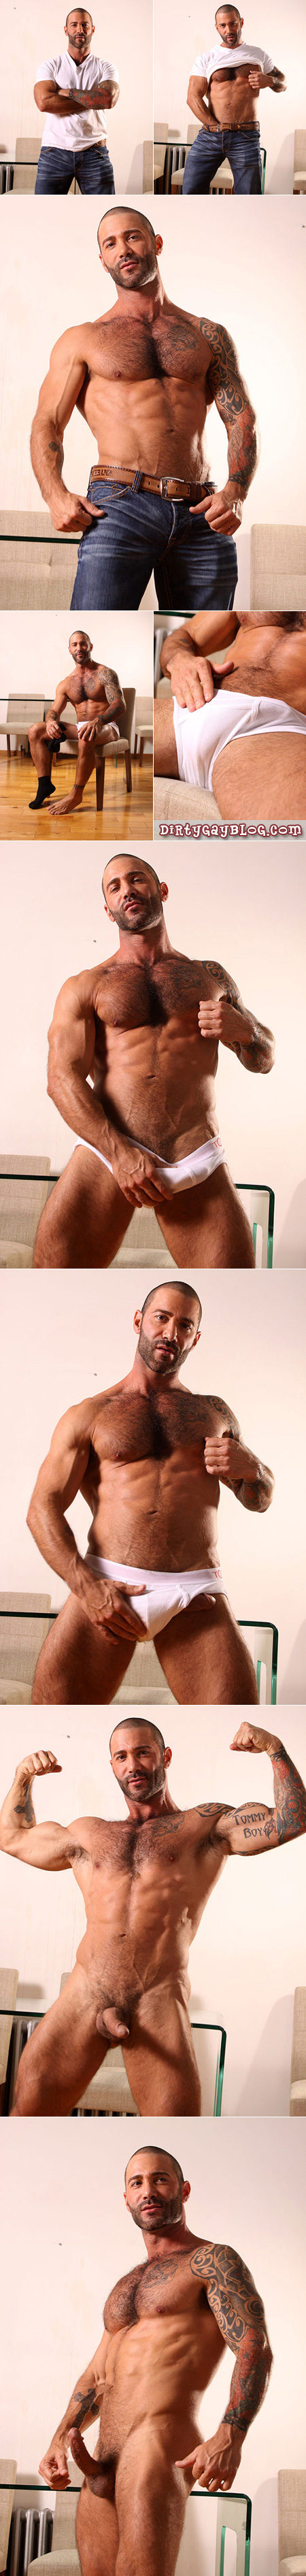 Hard-muscled, hairy and well-hung describe this powerhouse of gay porn.